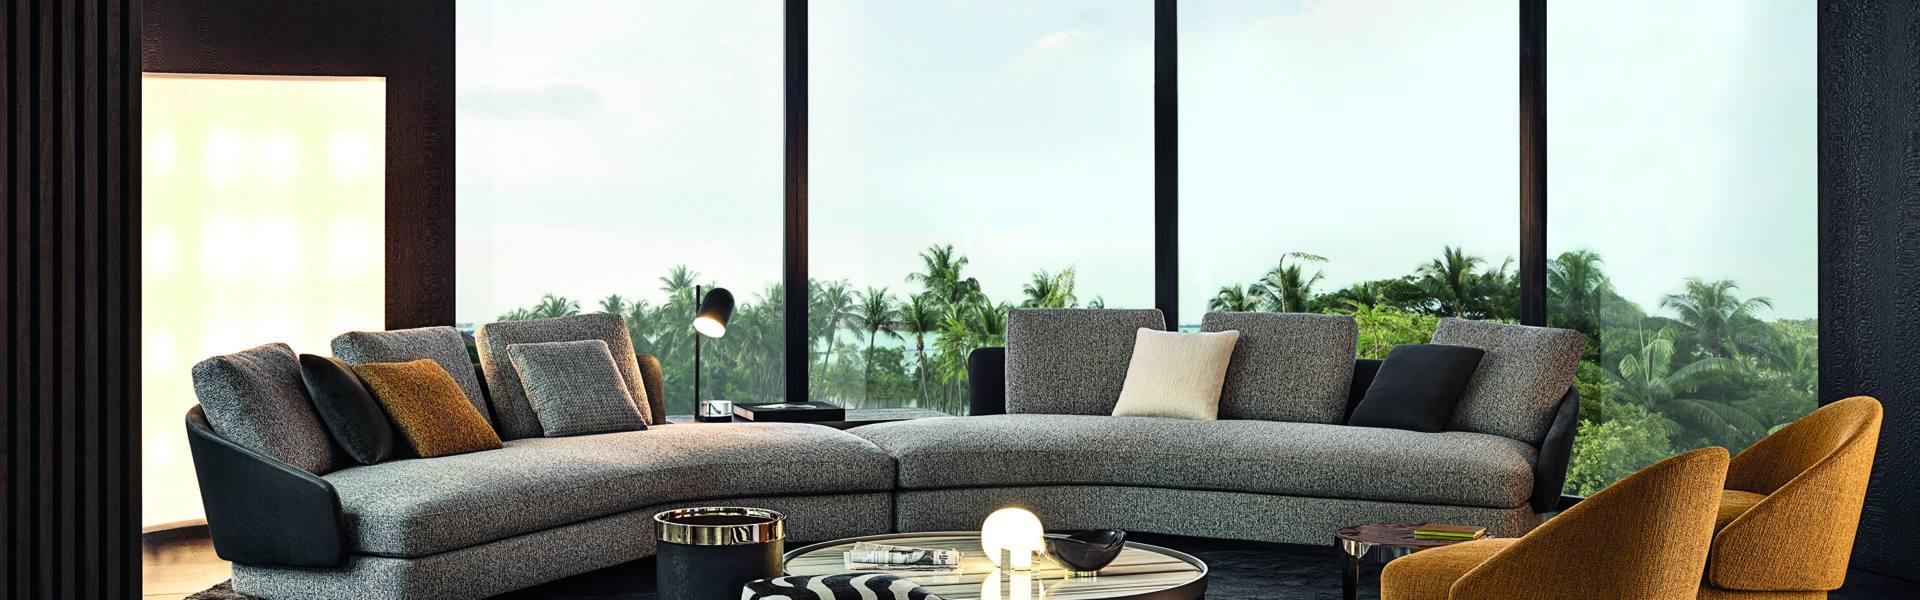 "Minotti explores ""New Forms"" with its latest furniture collection"